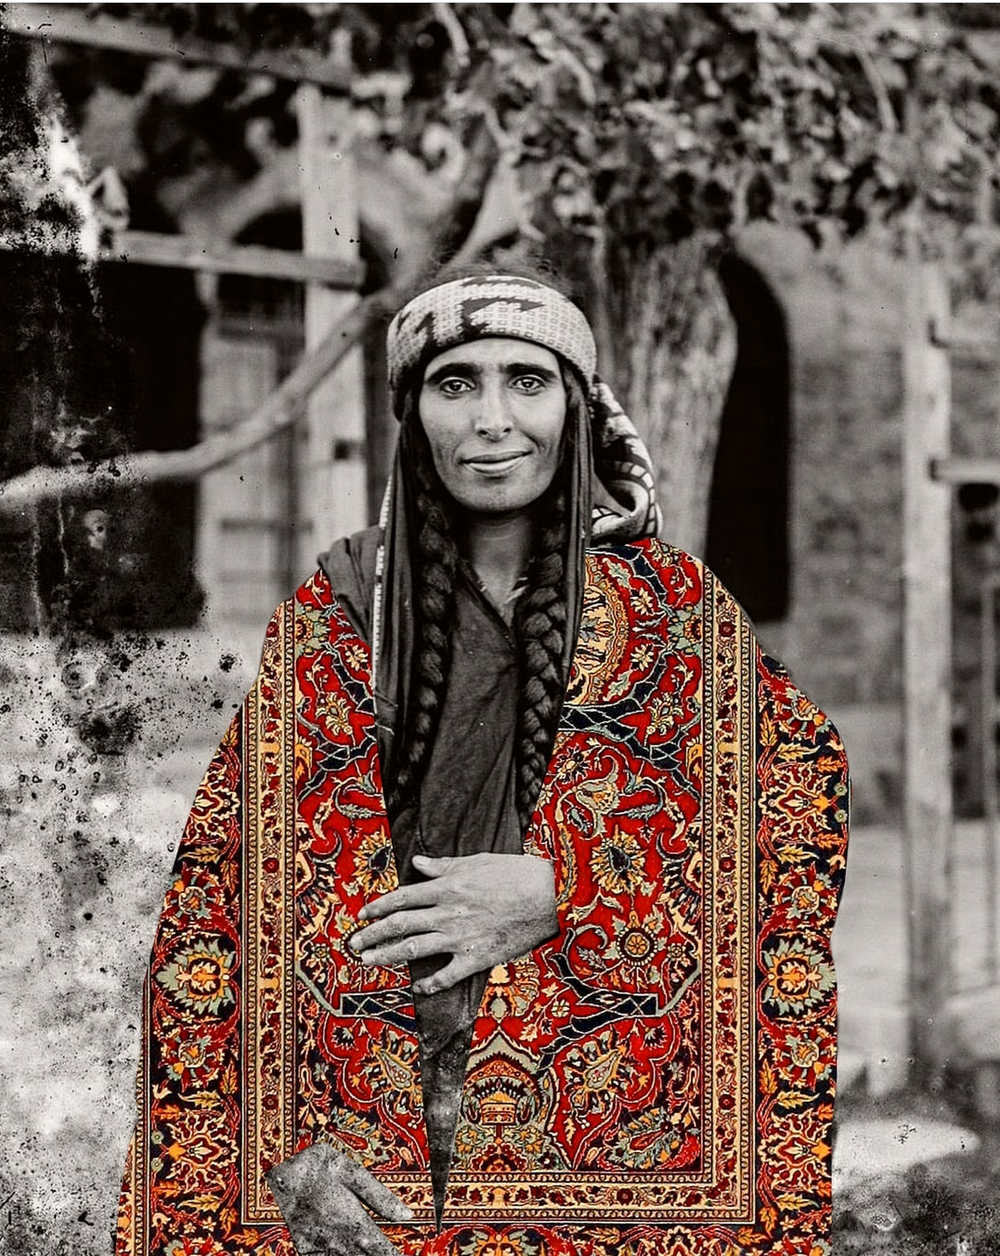 <b>Beya Khalifa</b></br><i>Doppleganger</i></br>Antique photograph and digital collage</br>Limited edition of 20</br>16 x 12 in</br>$300 unframed / $500 framed